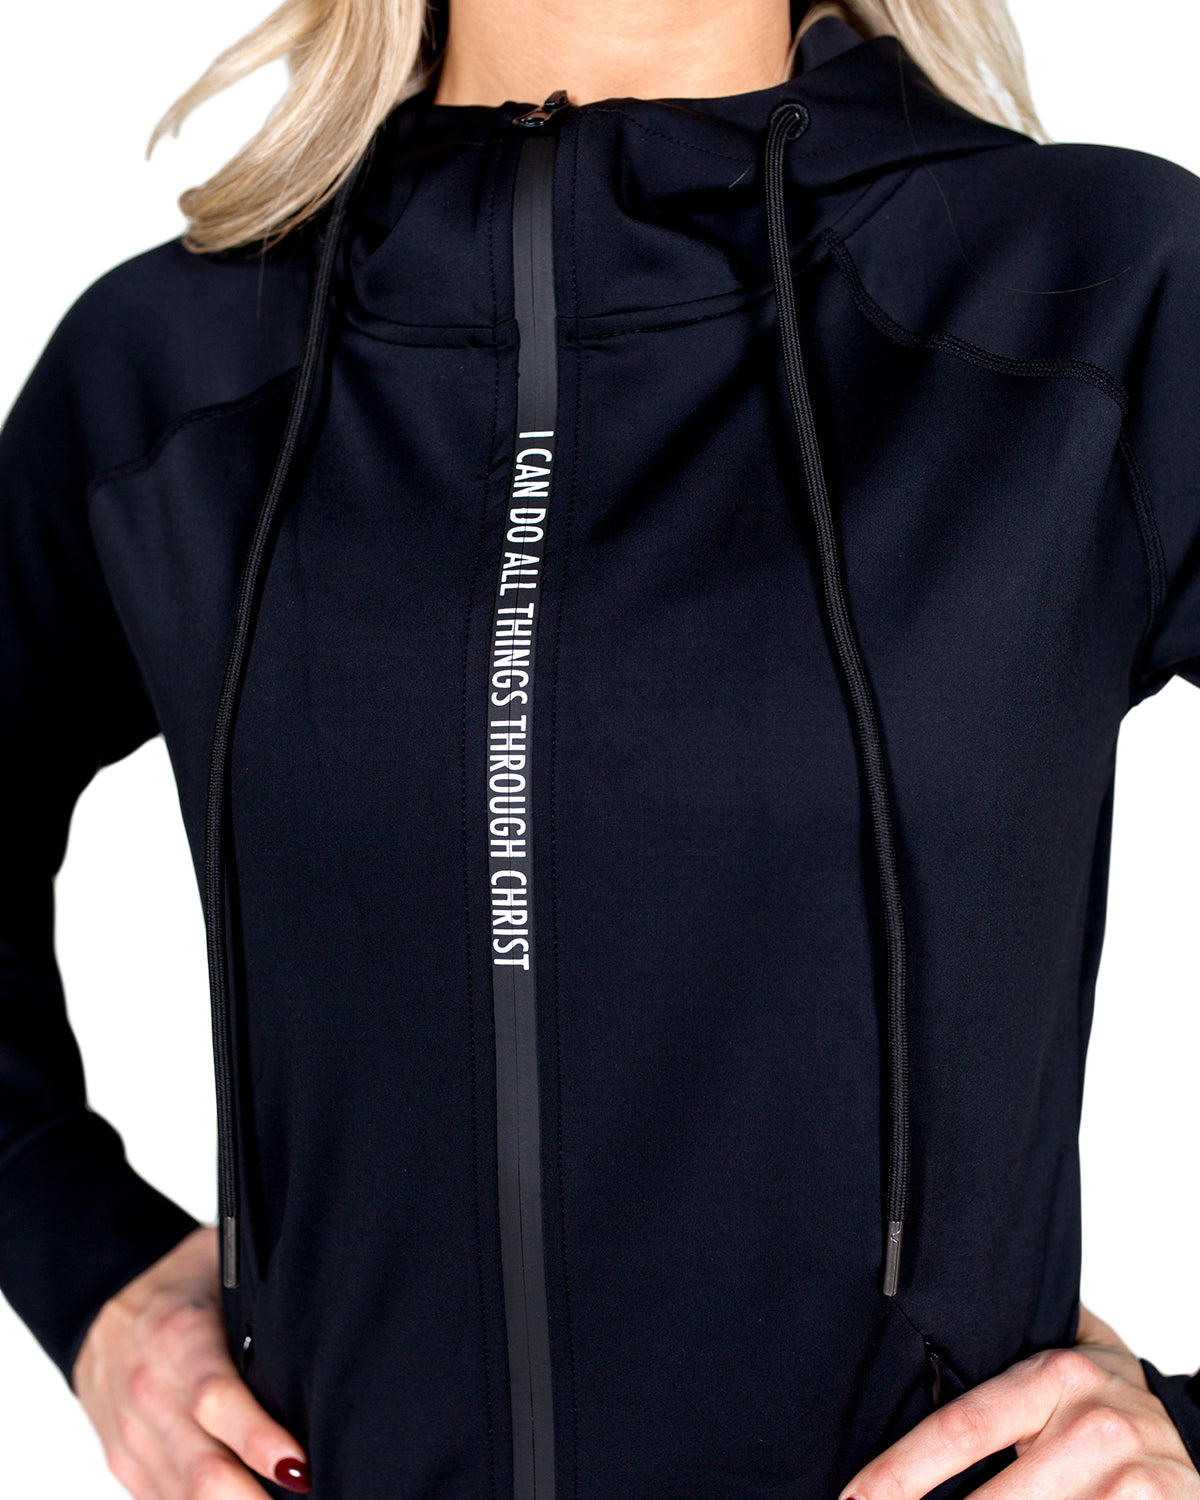 Women's I Can Do All Things Zipper Hoodie